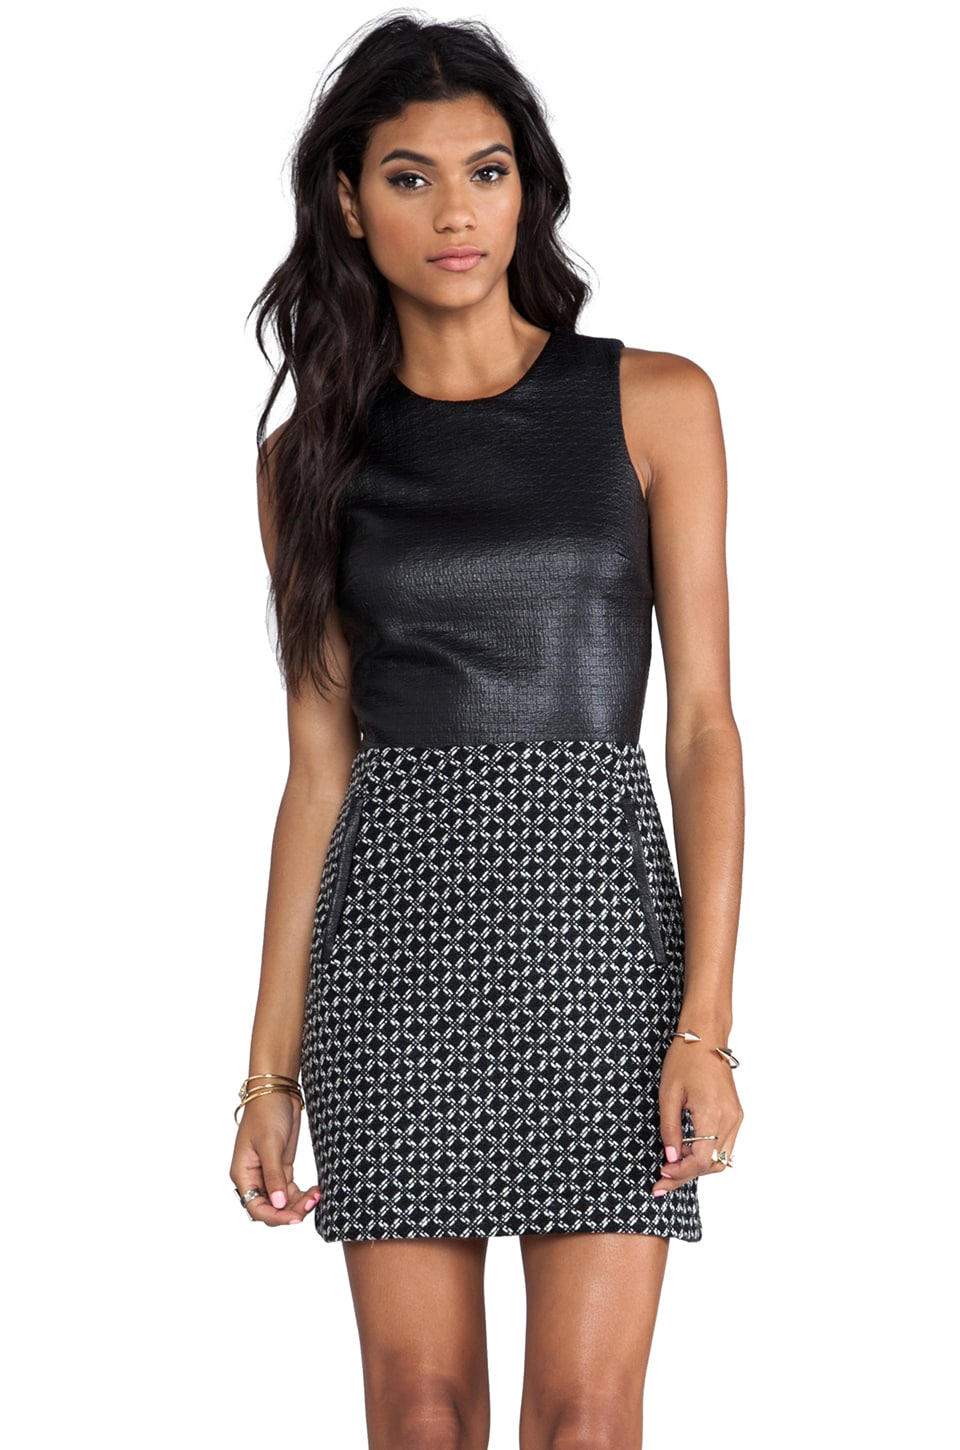 Dolce Vita Maciee Checker Tweed Dress in Black/White